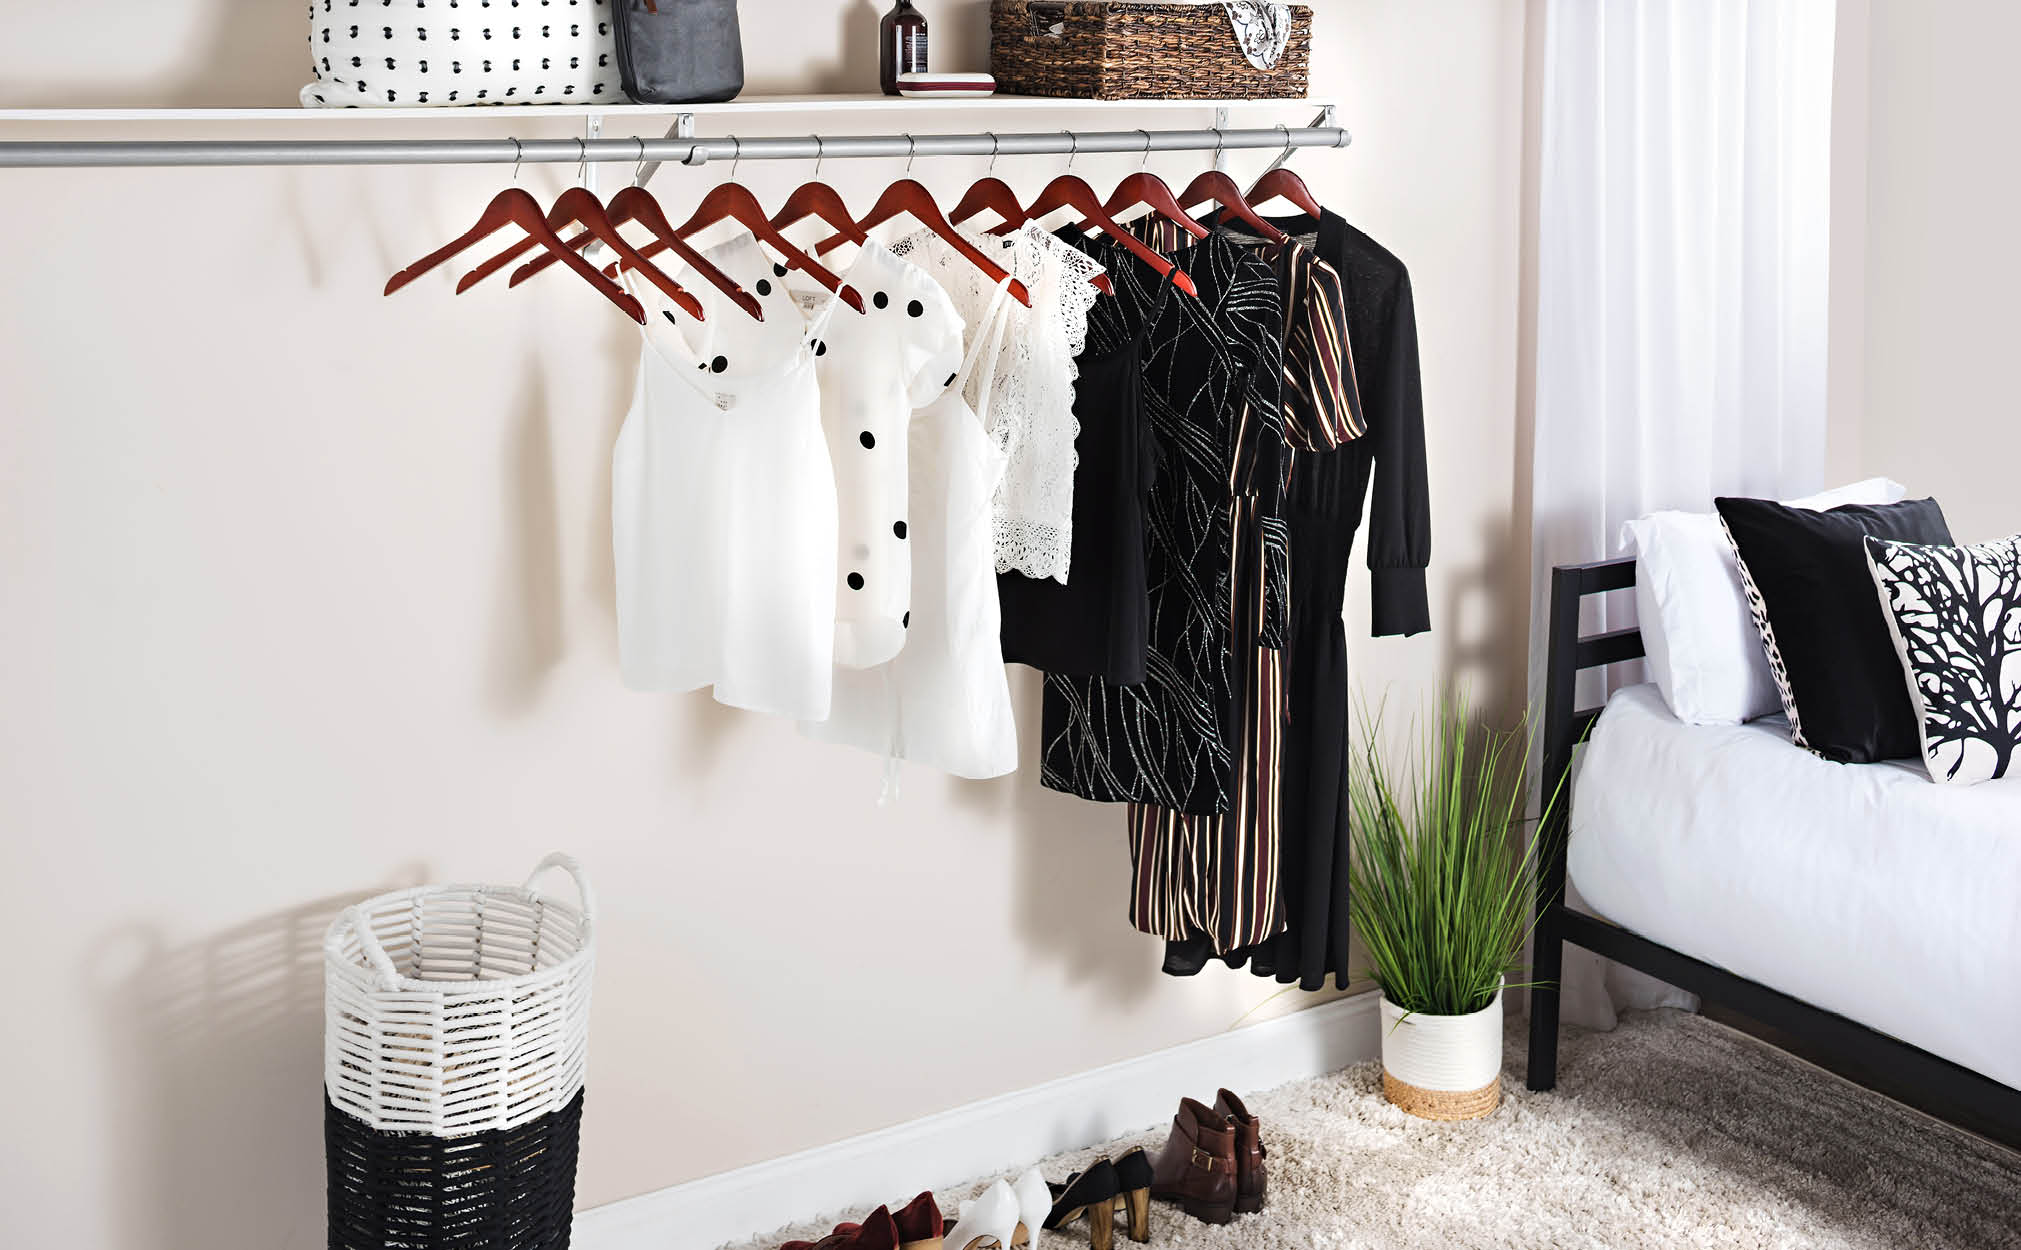 10-Pack Cherry Wooden Suit Hanger with Anti-Slip Feature